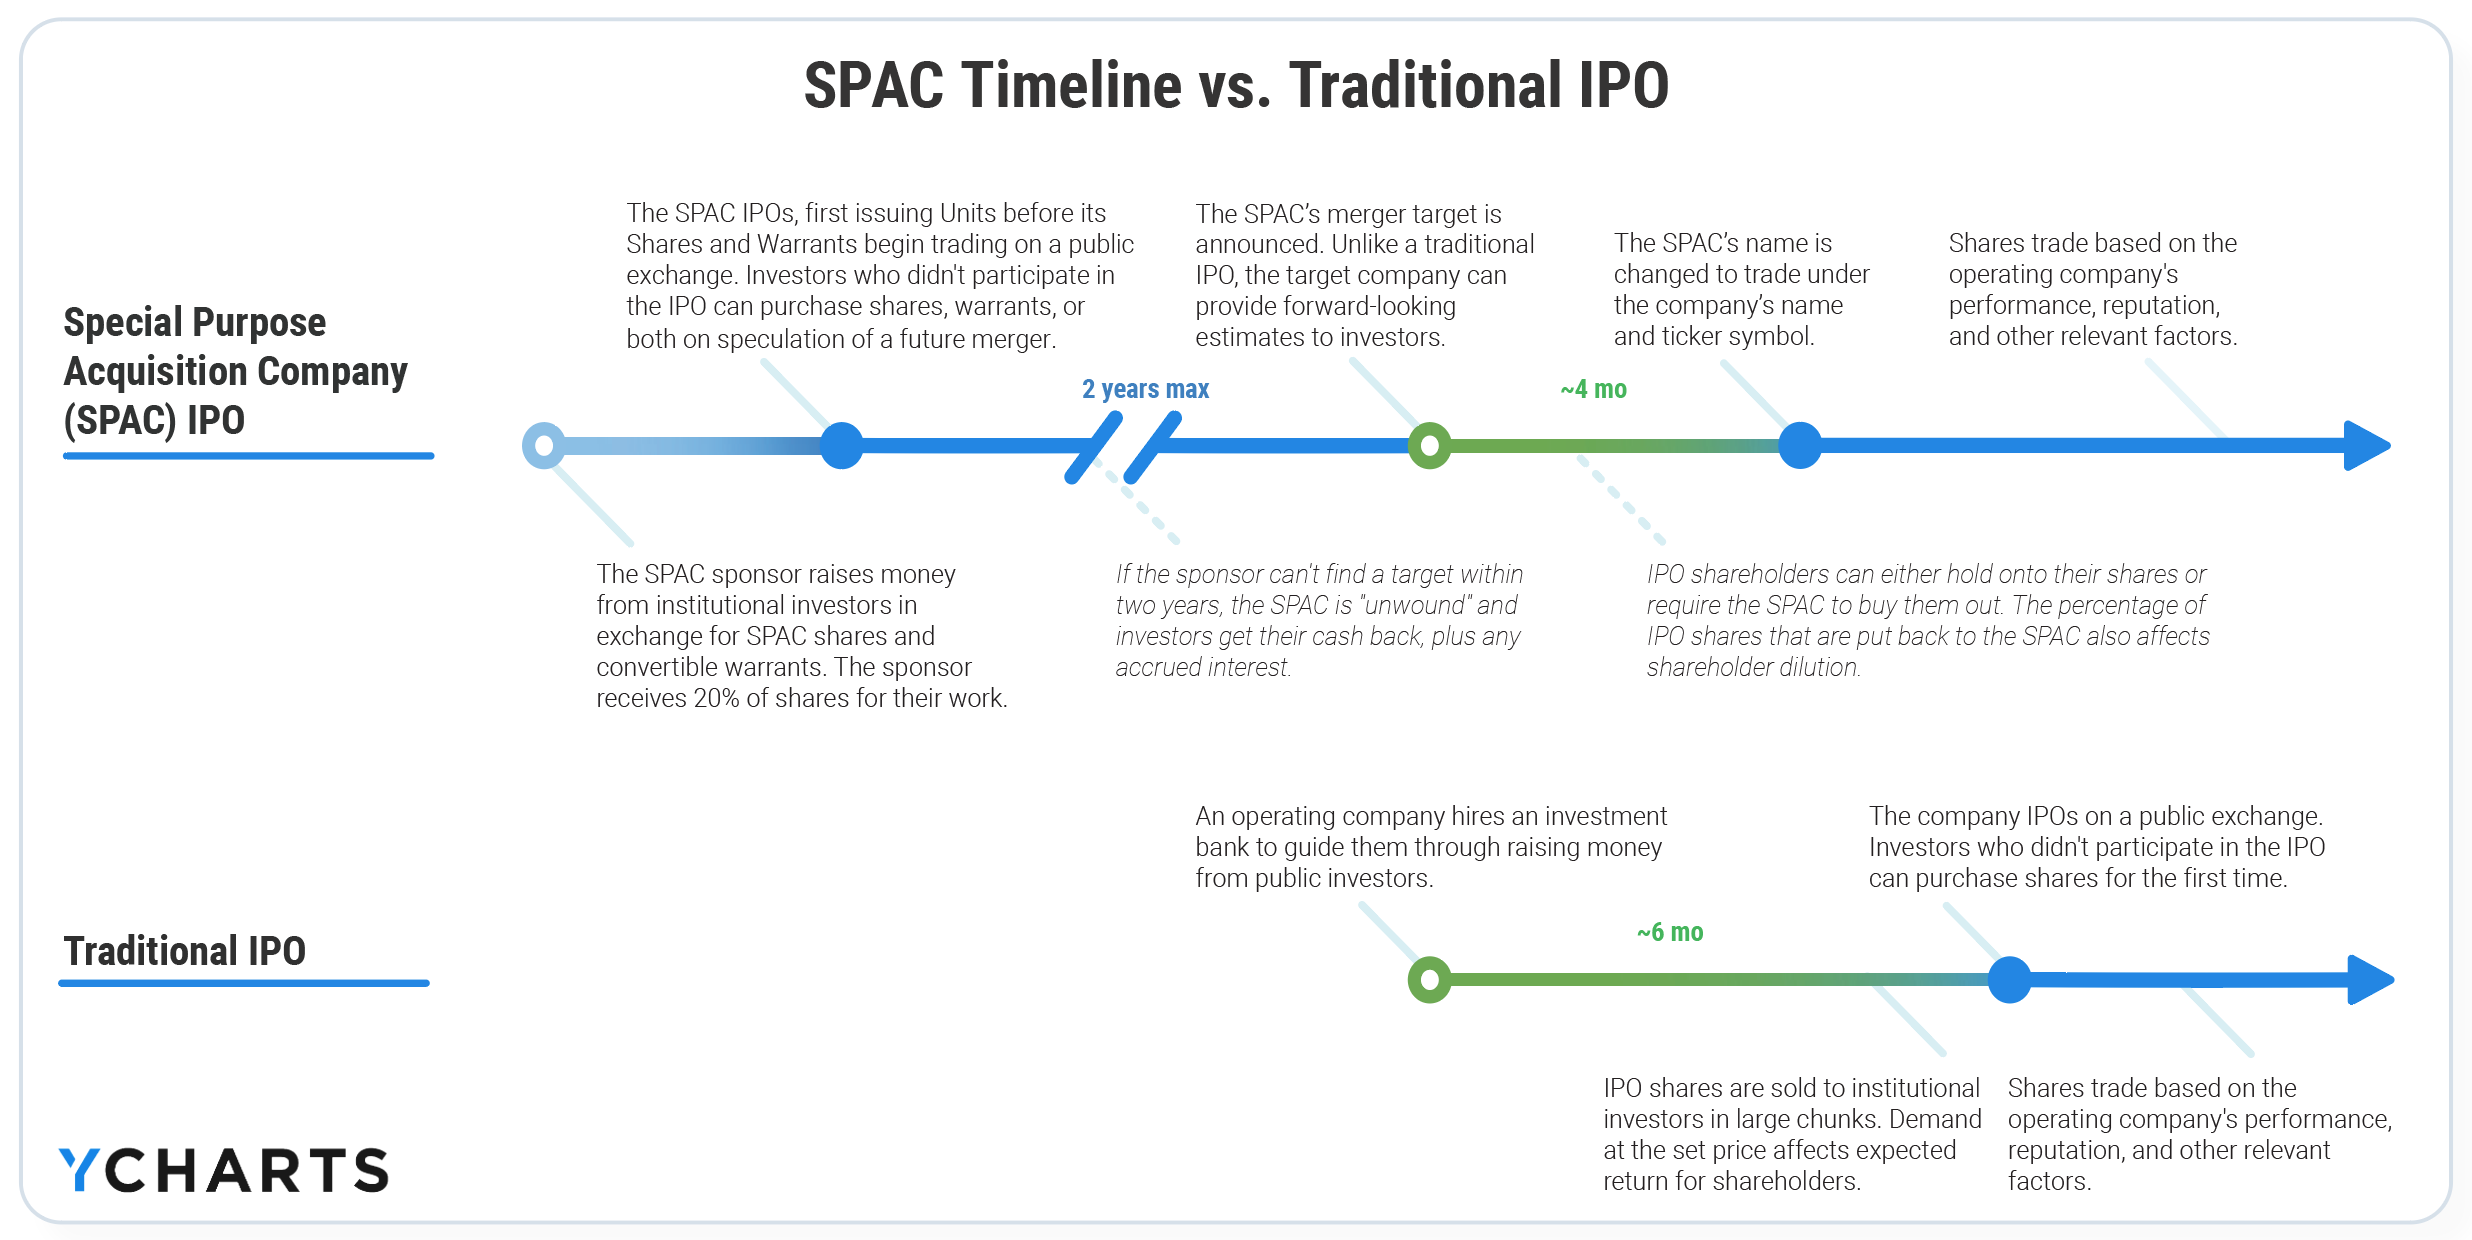 spac timeline vs traditional ipo